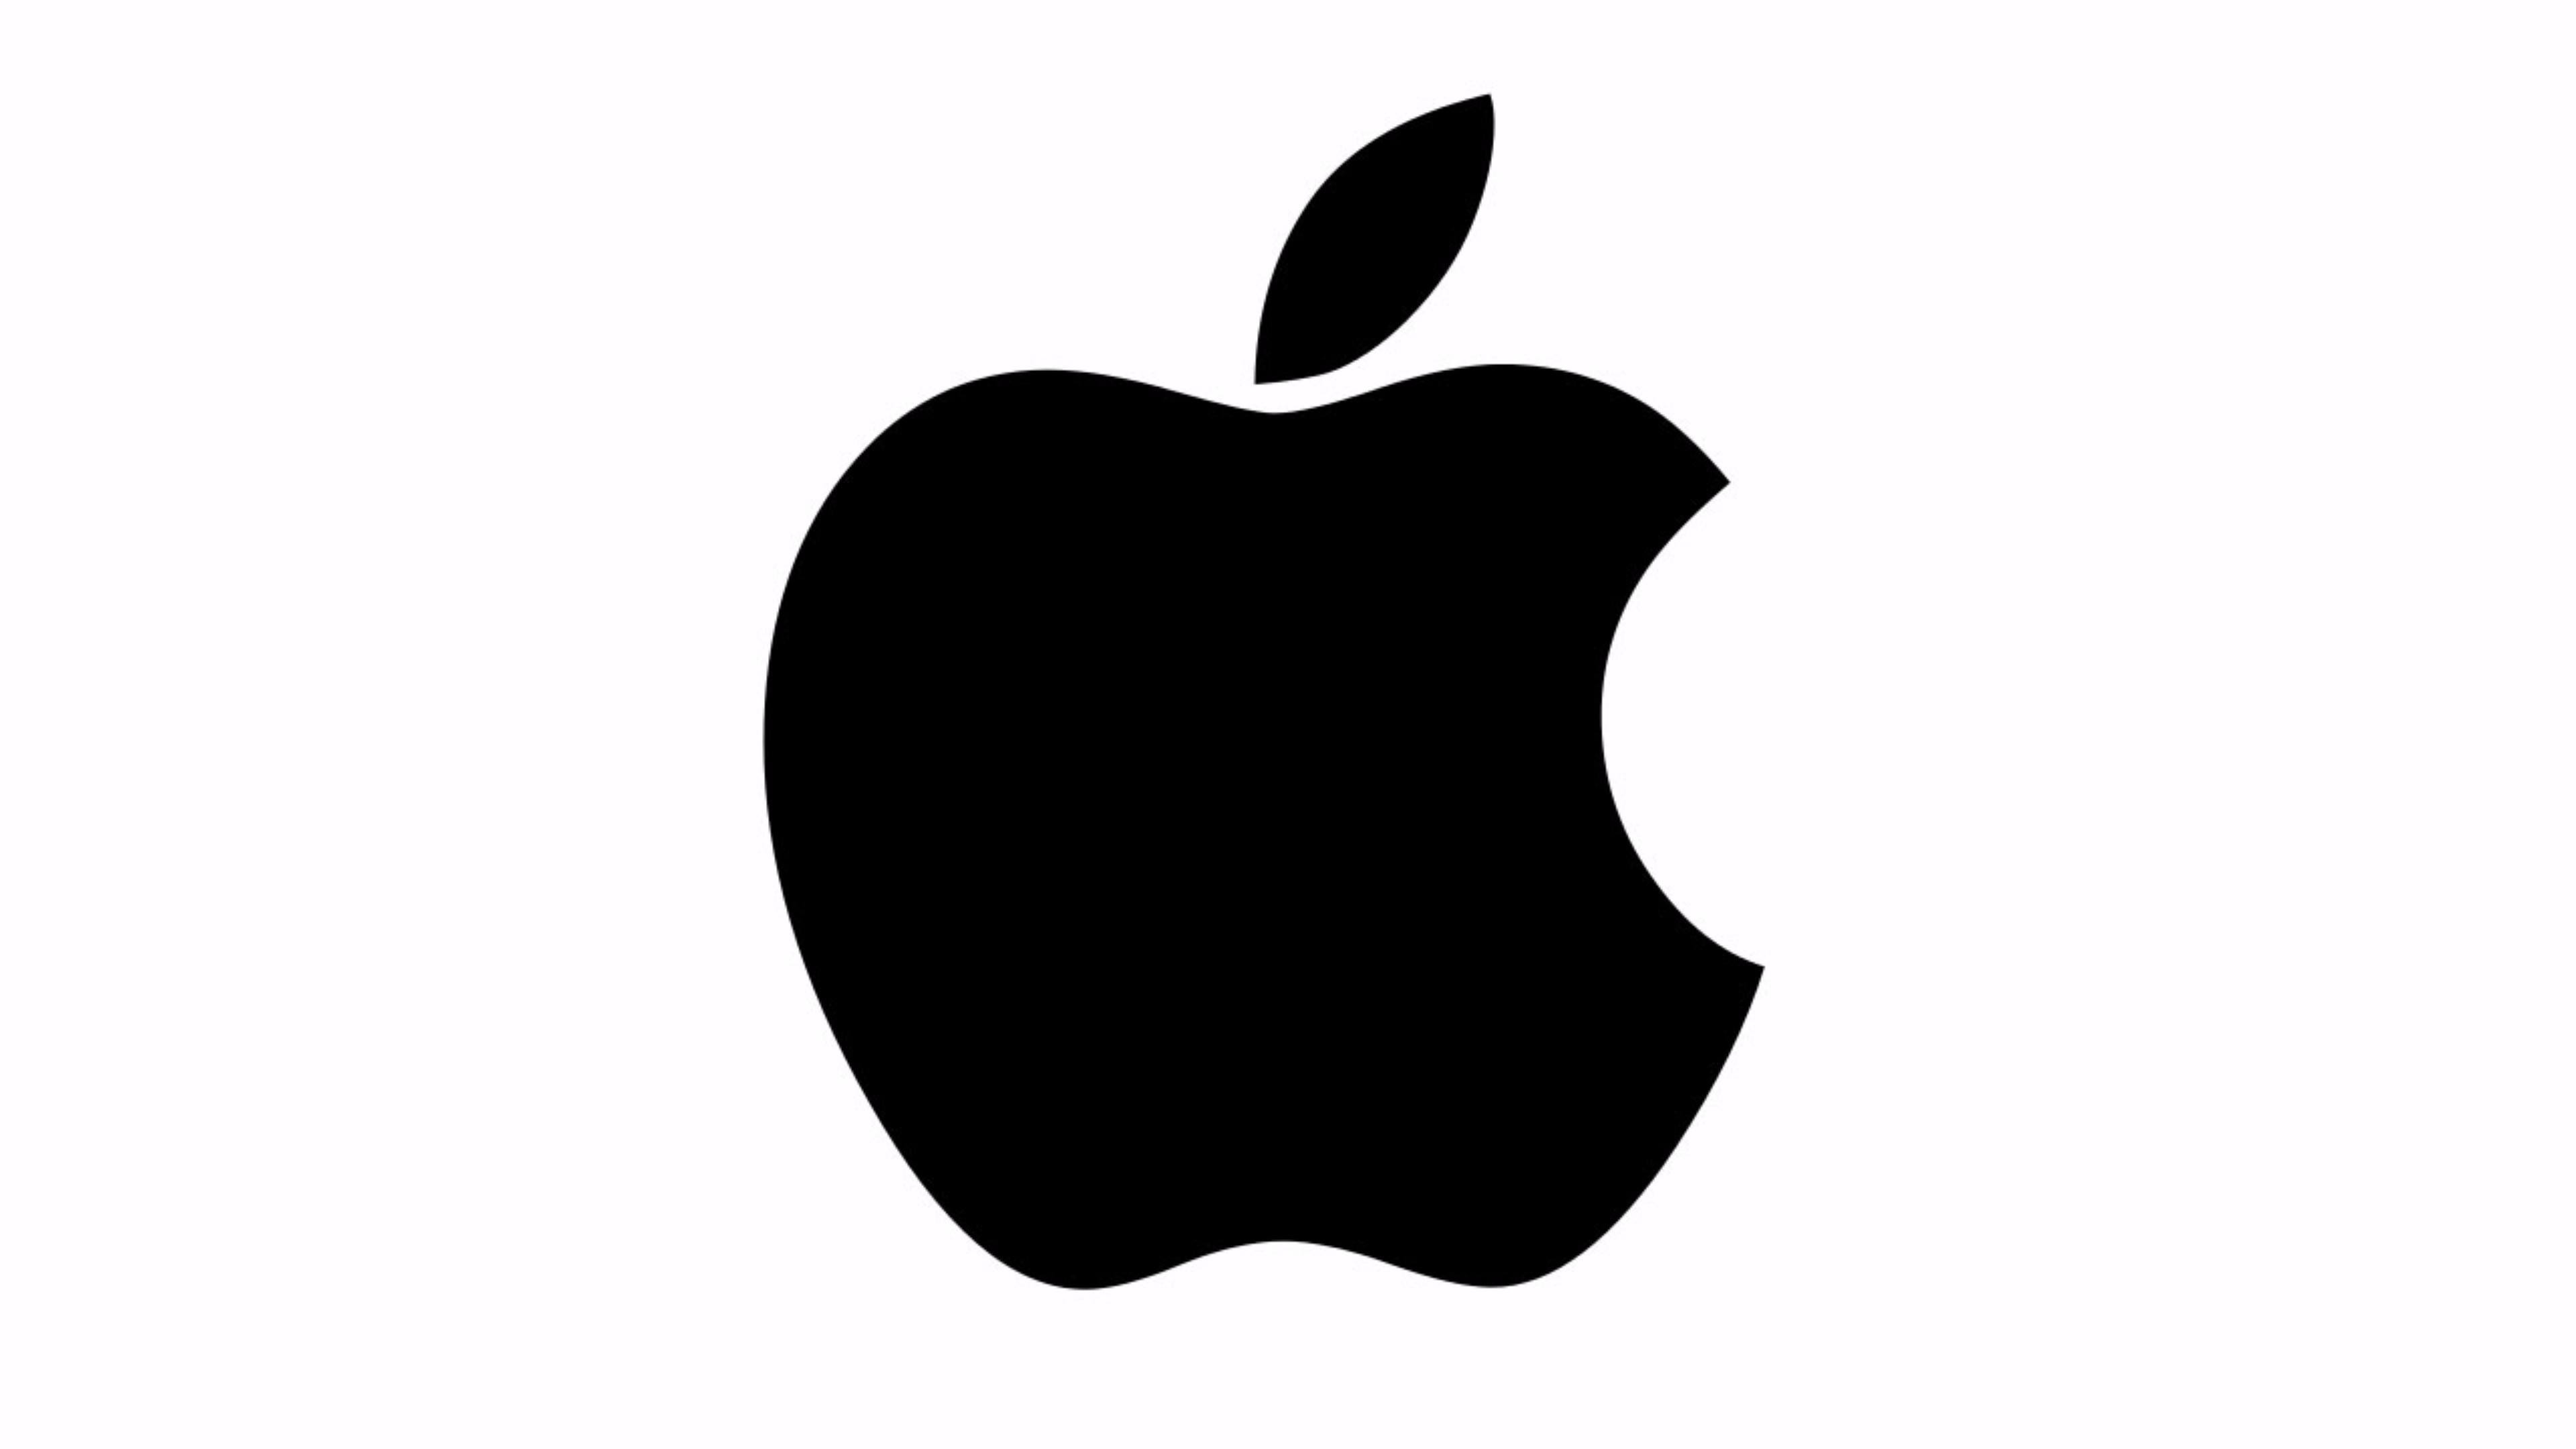 Black and White Apple Logo 4K Wallpaper | Free 4K Wallpaper